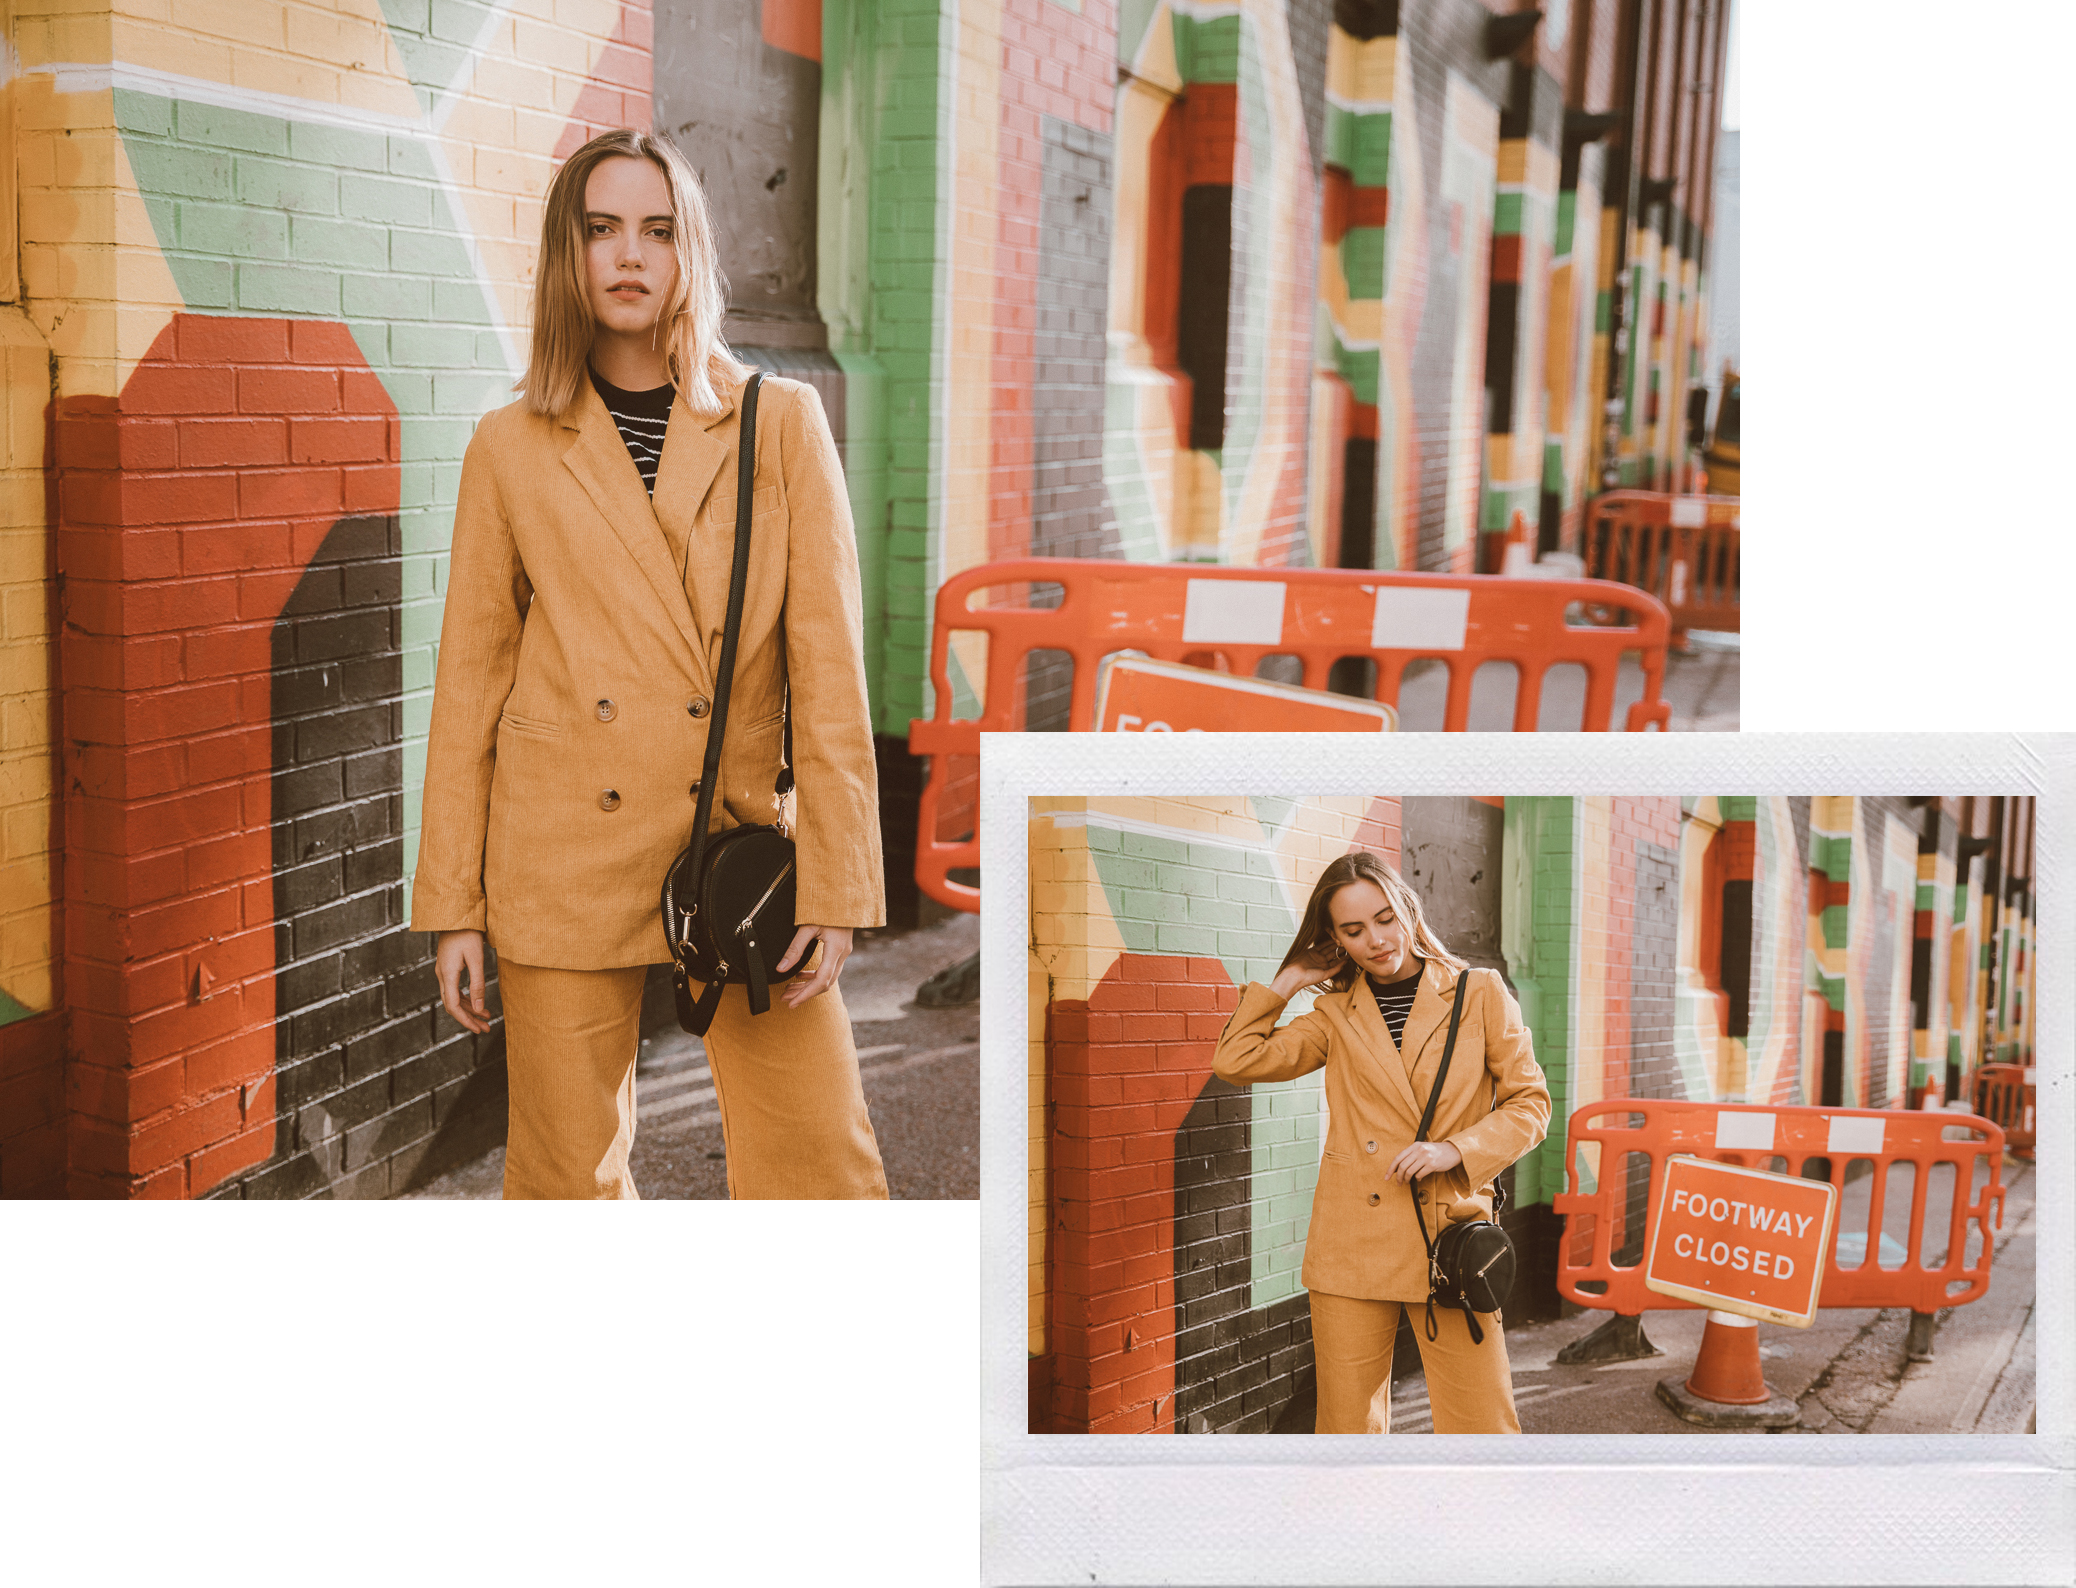 colorful Shoreditch setting - Sugar + Style lookbook Autumn 2018 shot by photographer Ailera Stone